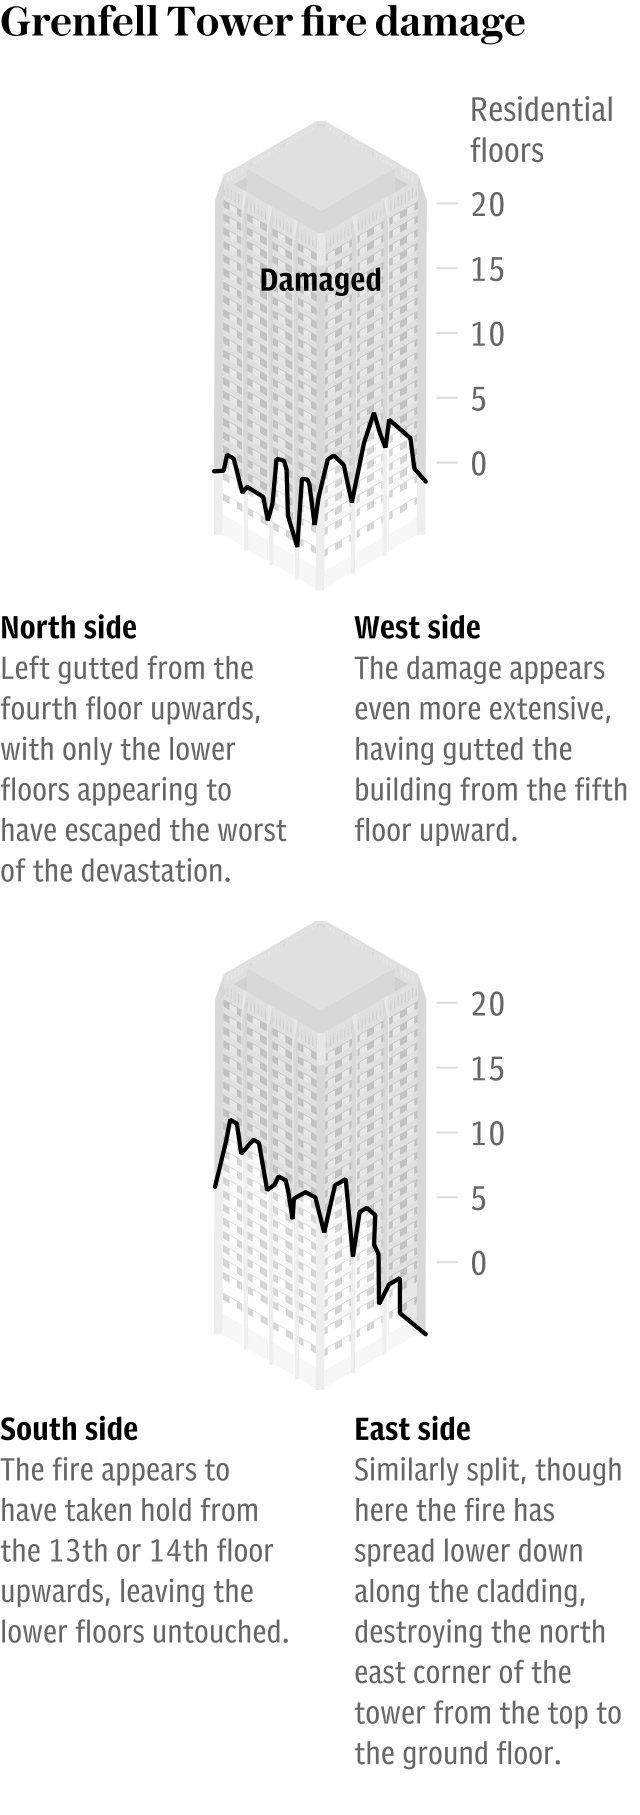 Graphic: Grenfell Tower fire damage